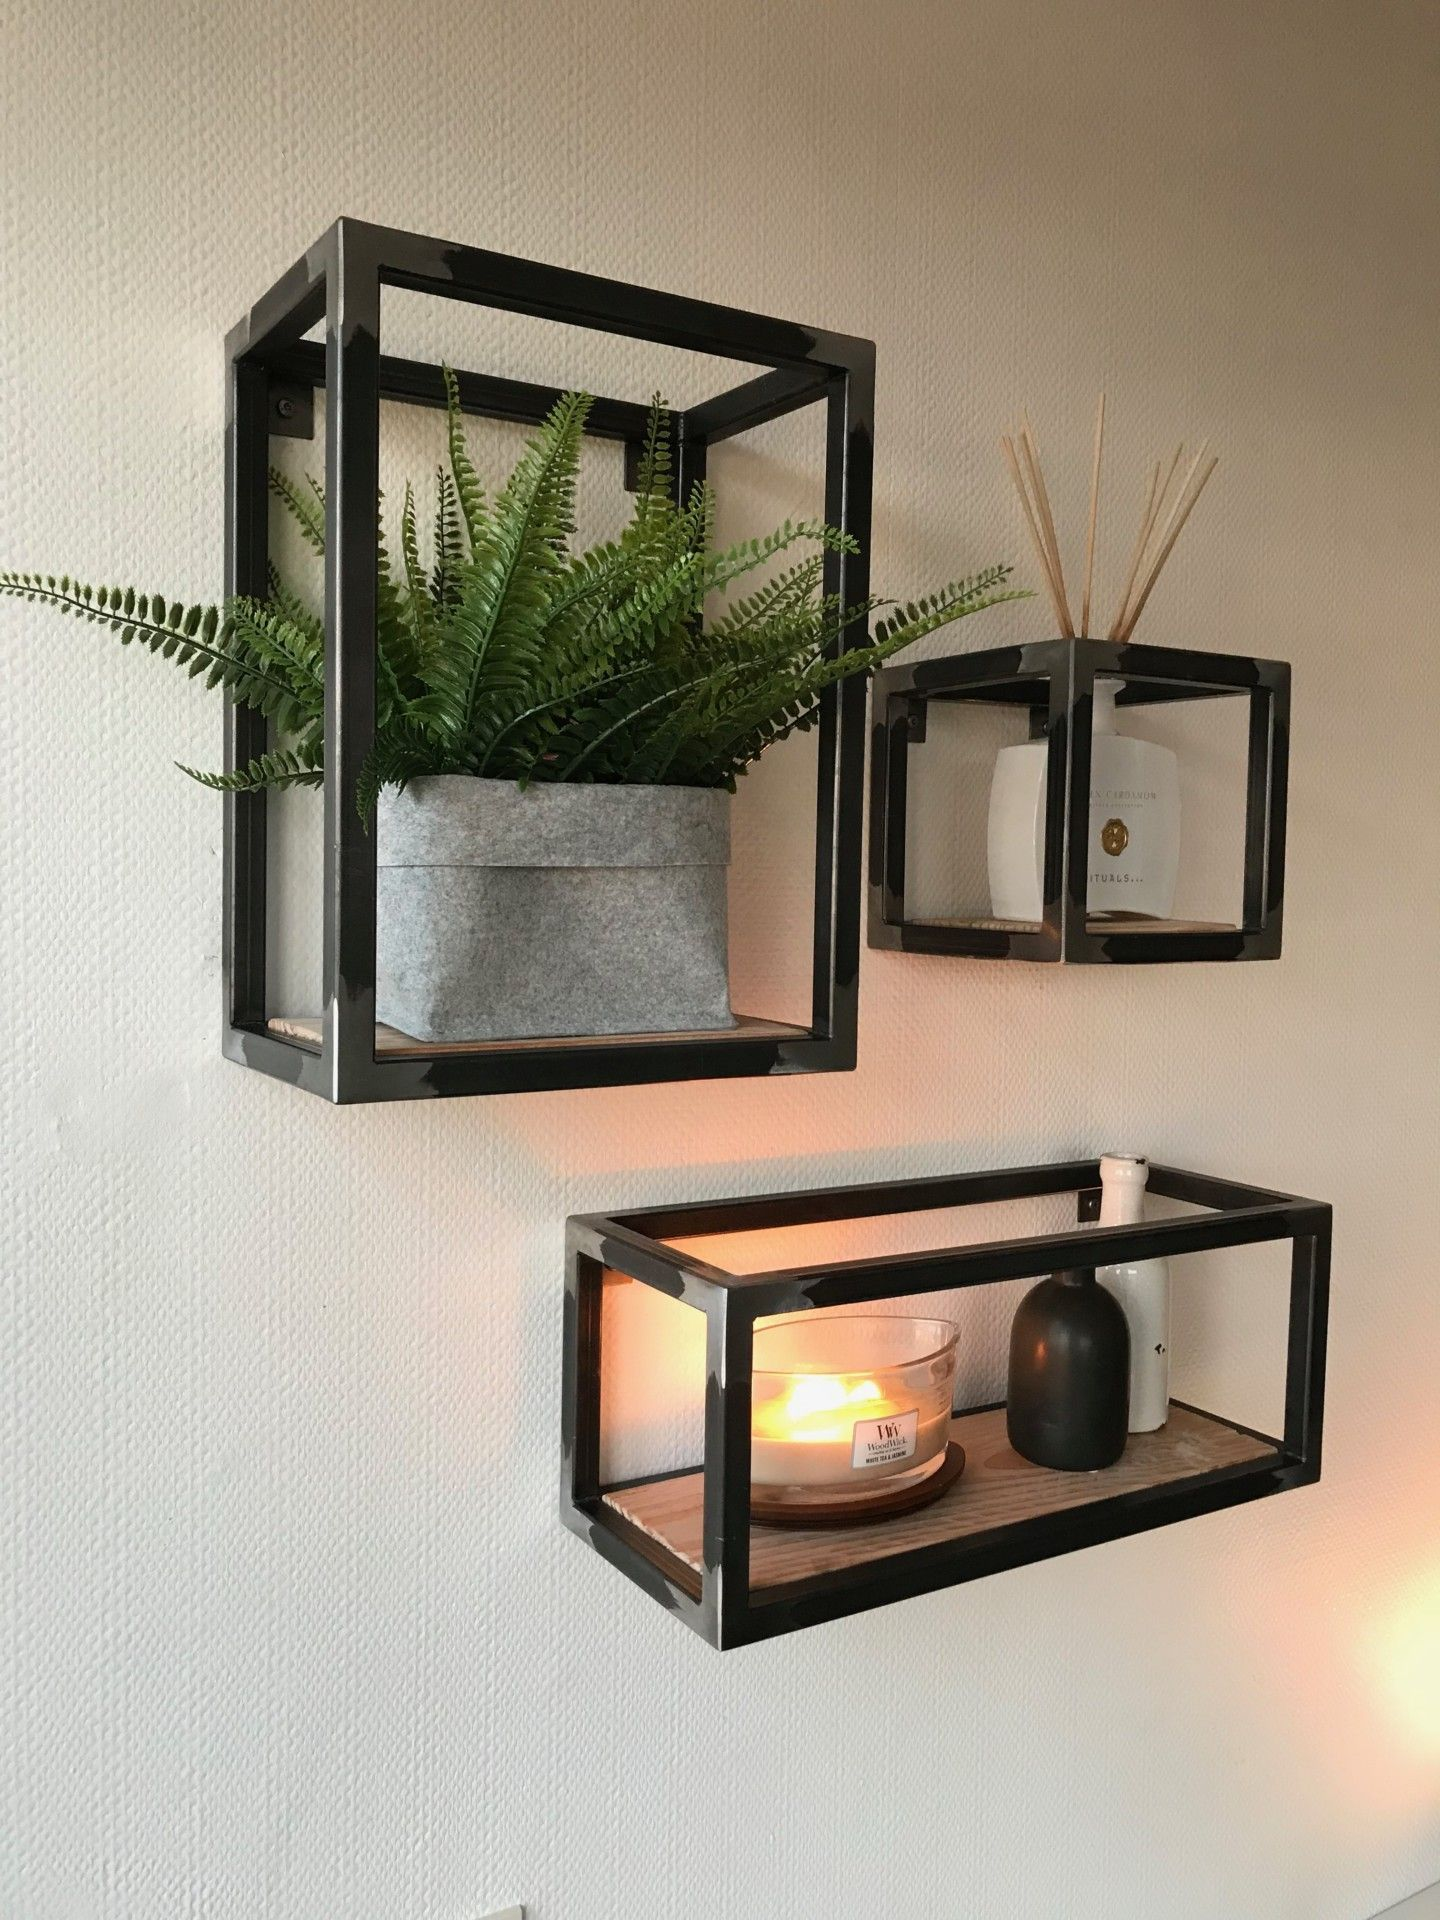 60 Simple DIY Decoration Projects That Is On A Budget images